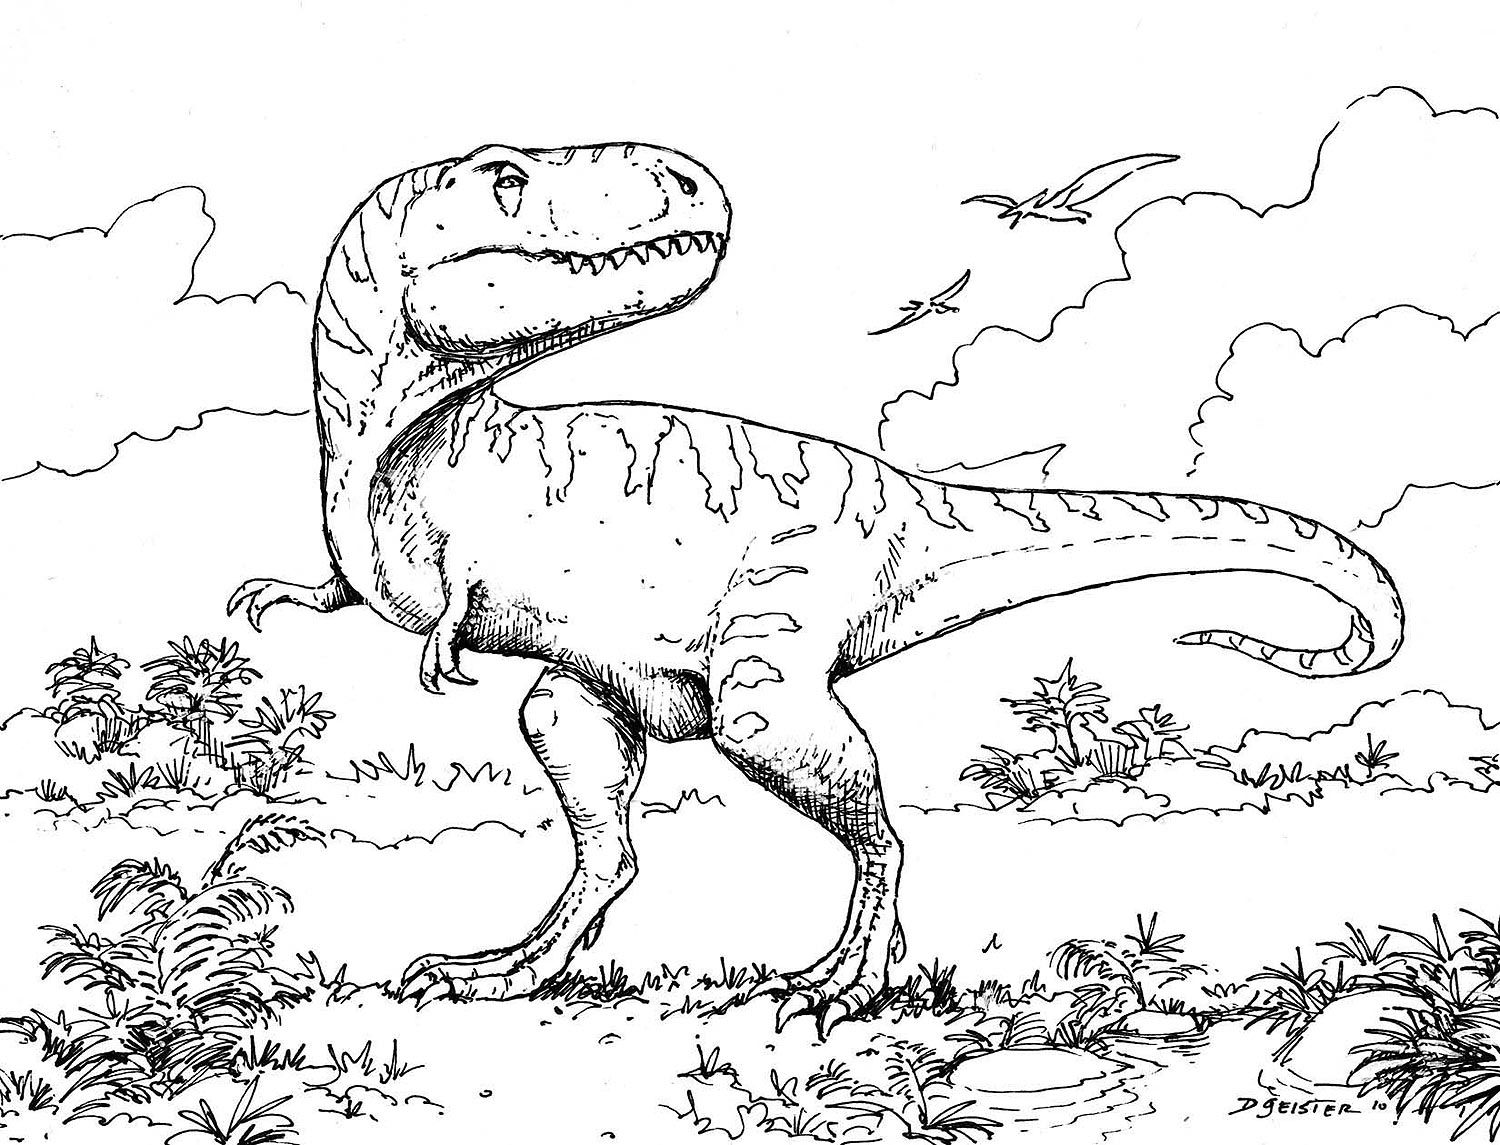 photograph relating to Printable Dinosaur Coloring Pages identified as Free of charge Printable Dinosaur Coloring Internet pages For Youngsters Entertaining